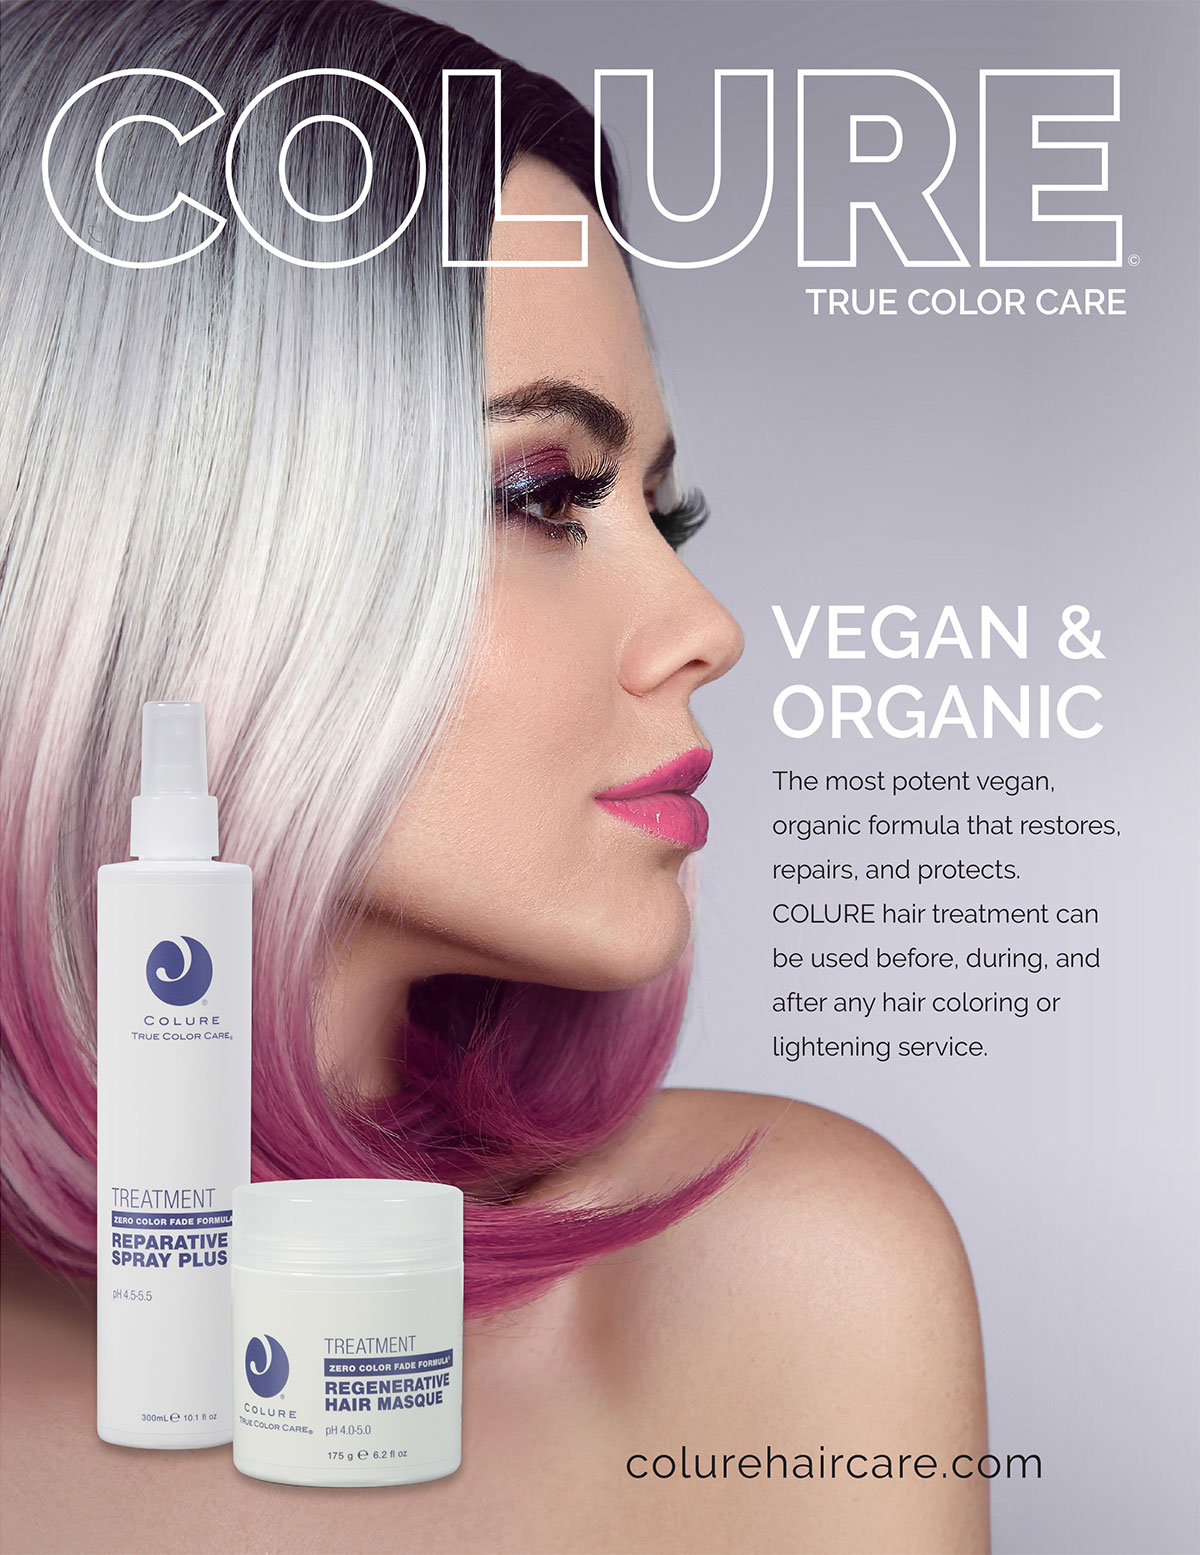 Colure catalog cover